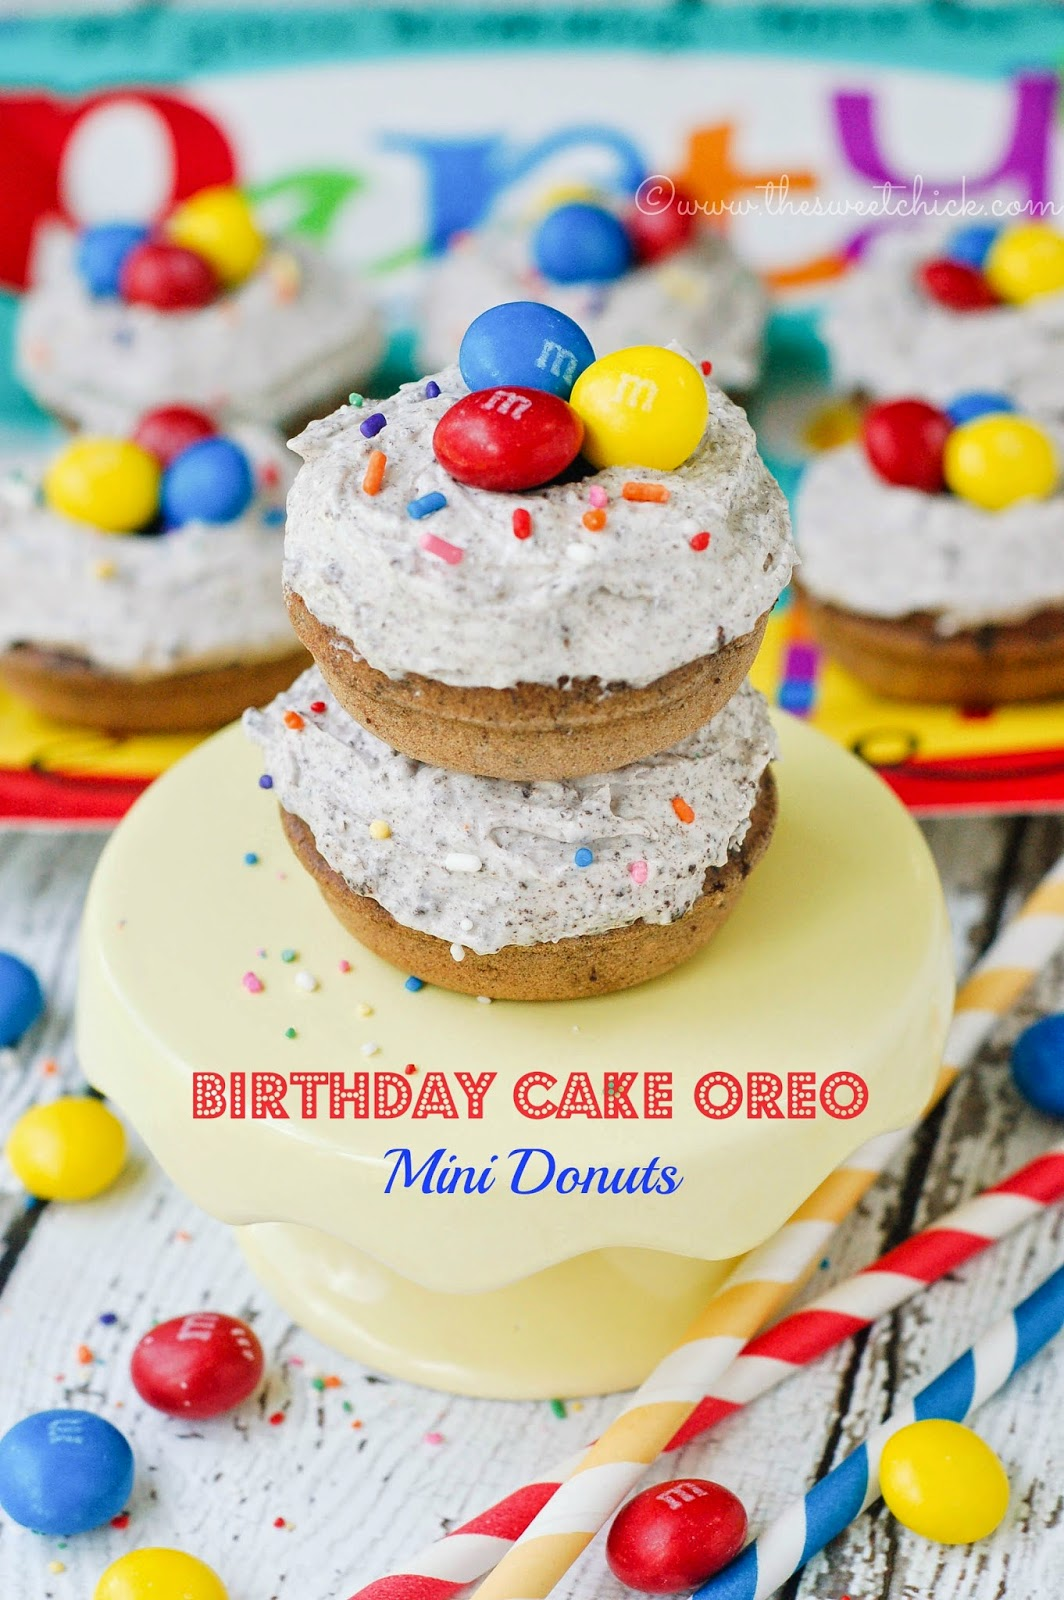 The Sweet Chick Birthday Cake Oreo Mini Donuts